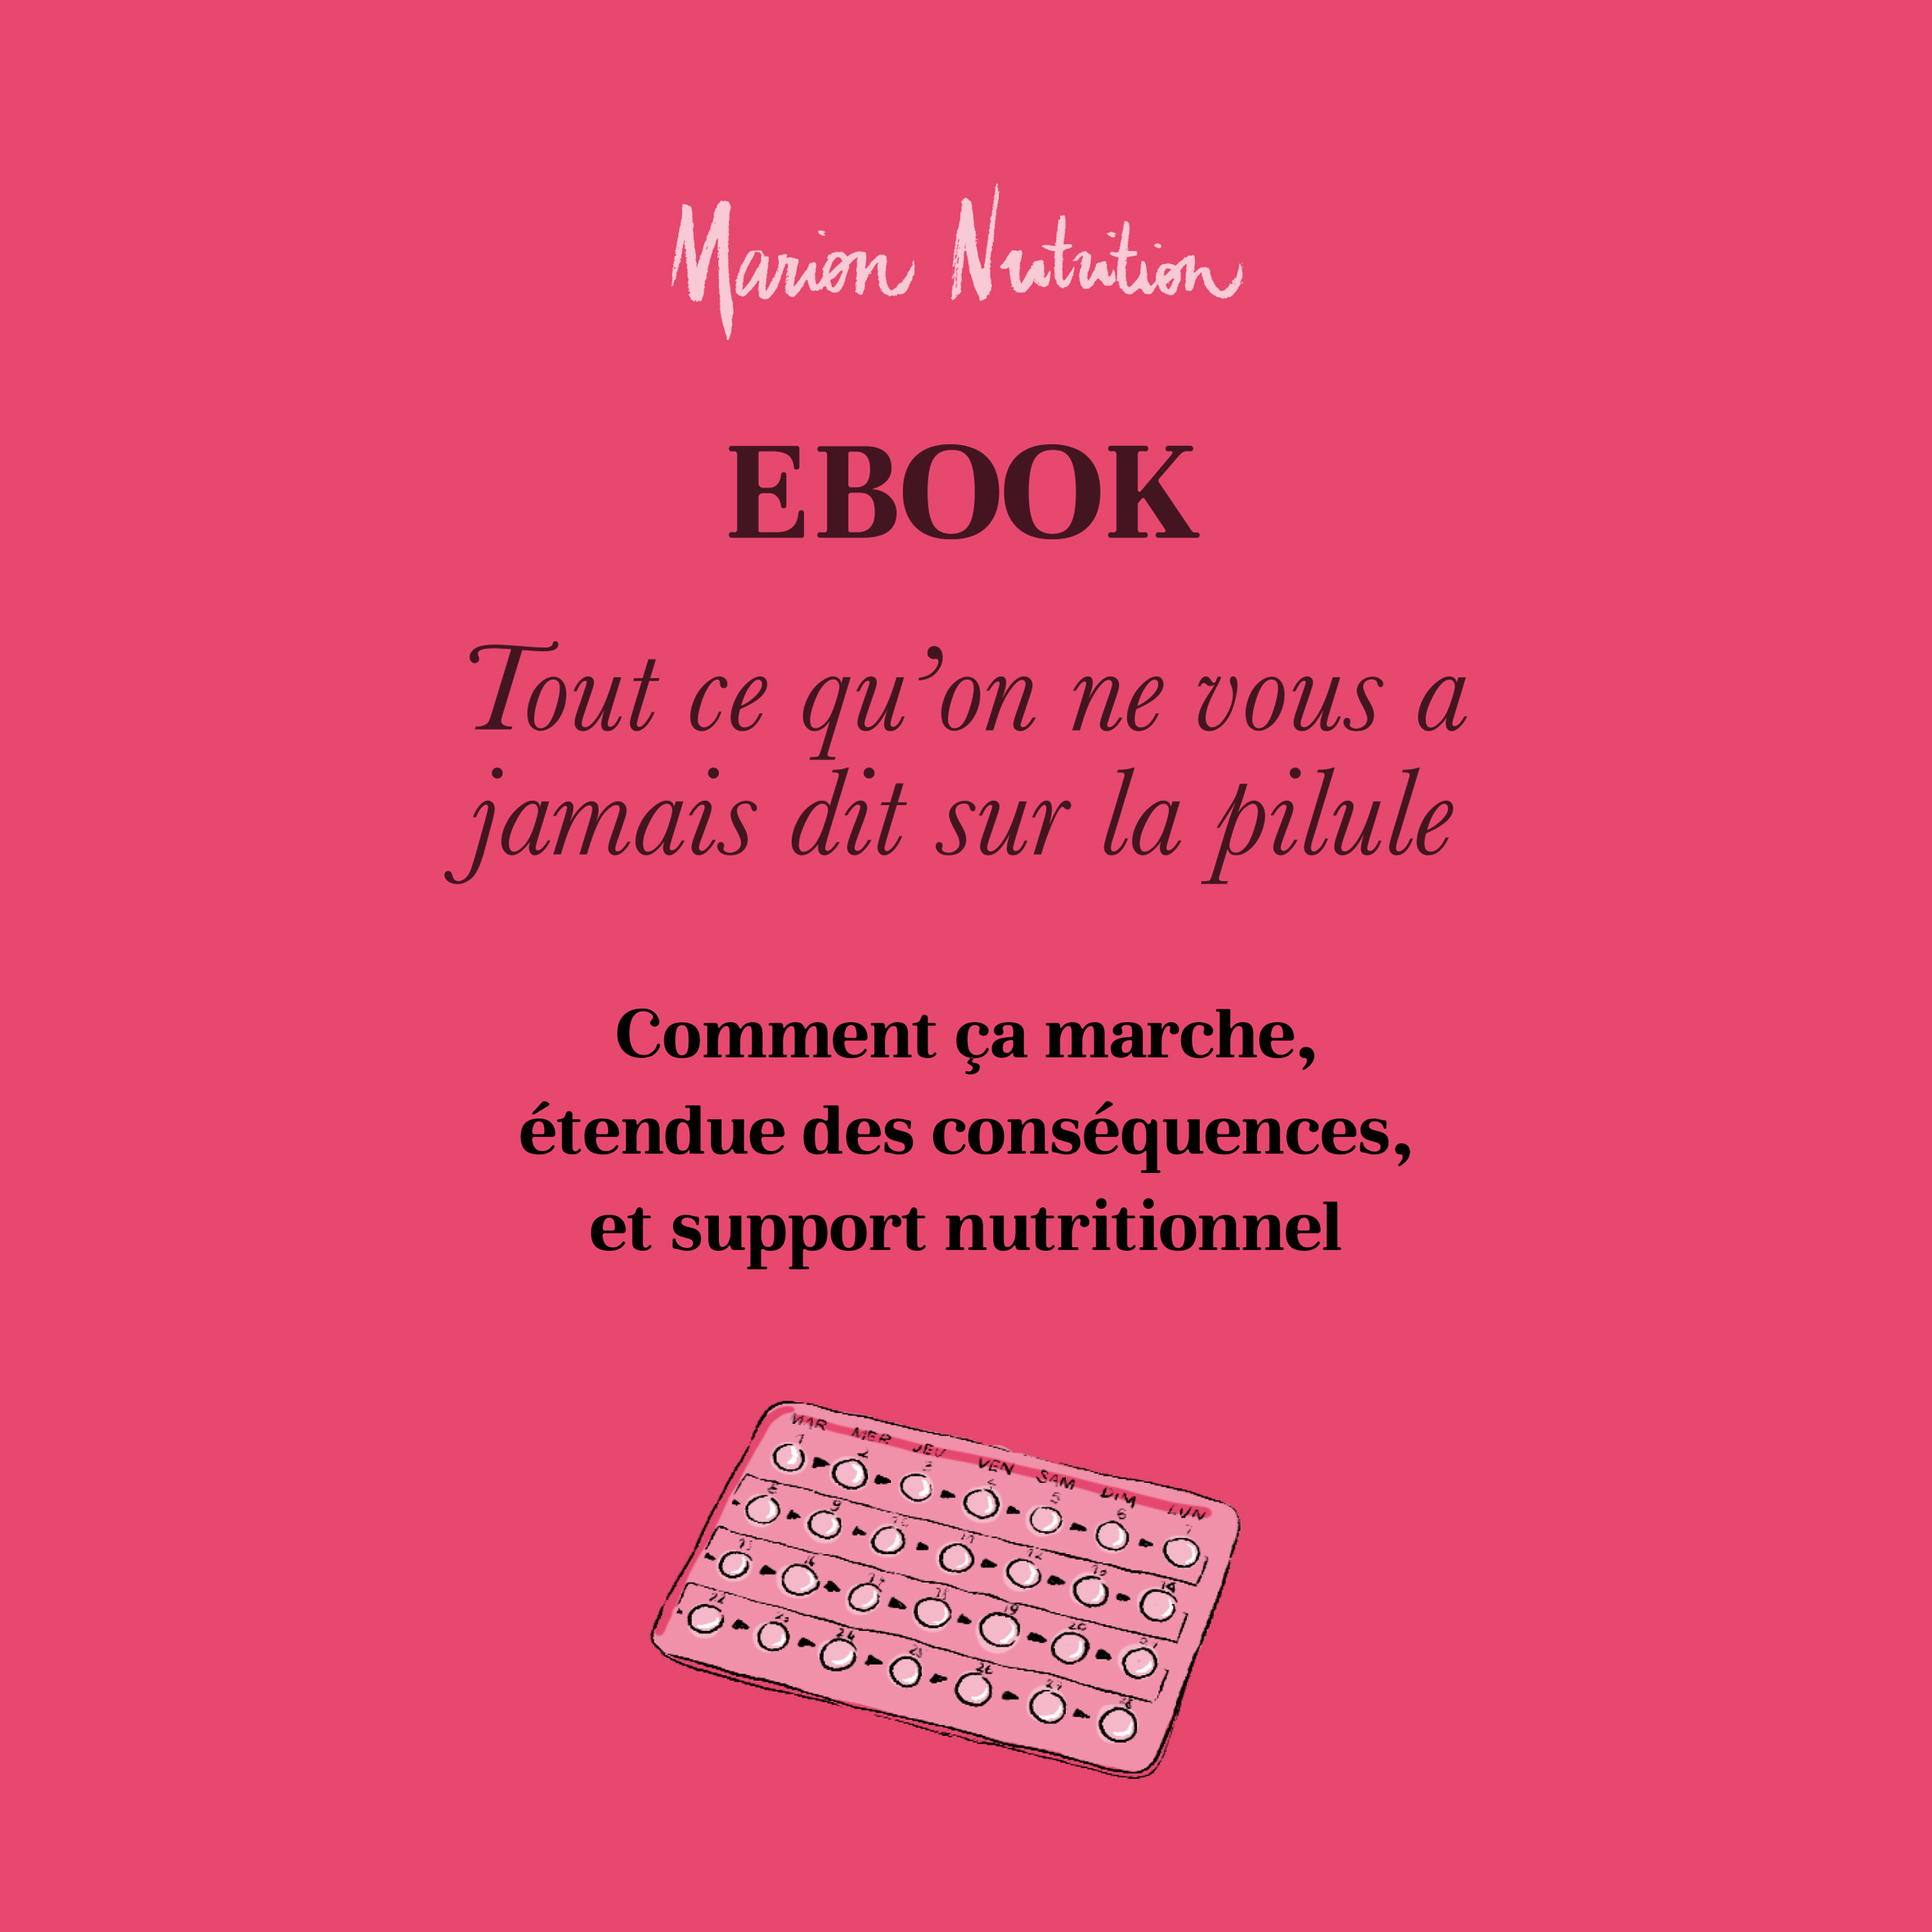 Ebook pilule